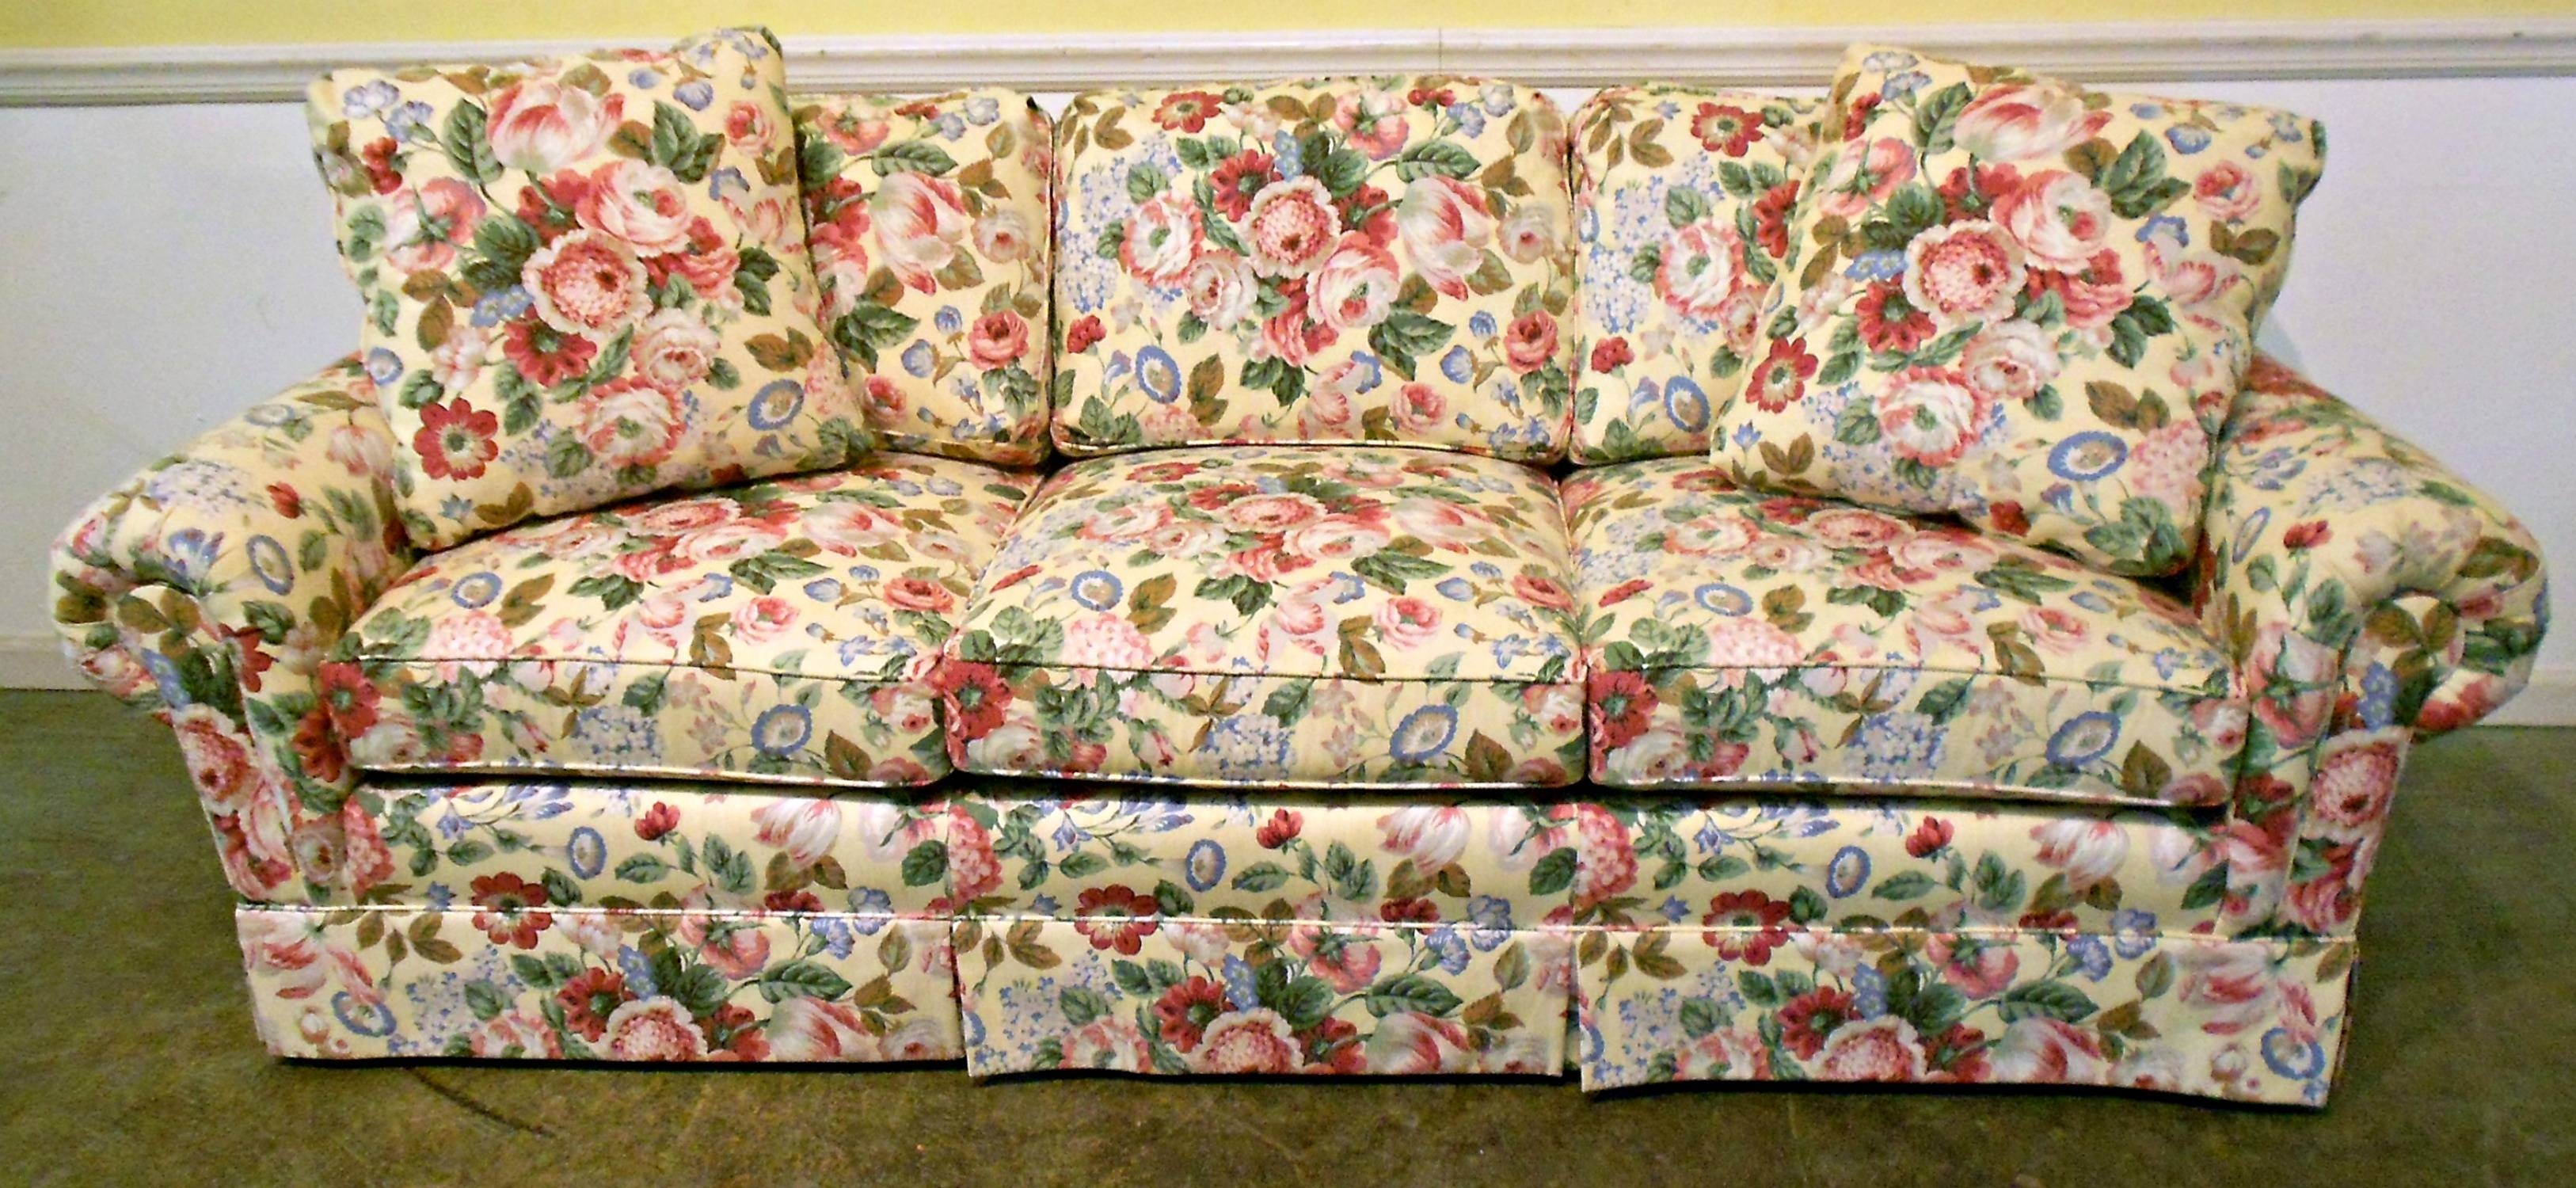 floral sectional sofa ottoman king single bed 15 best sofas